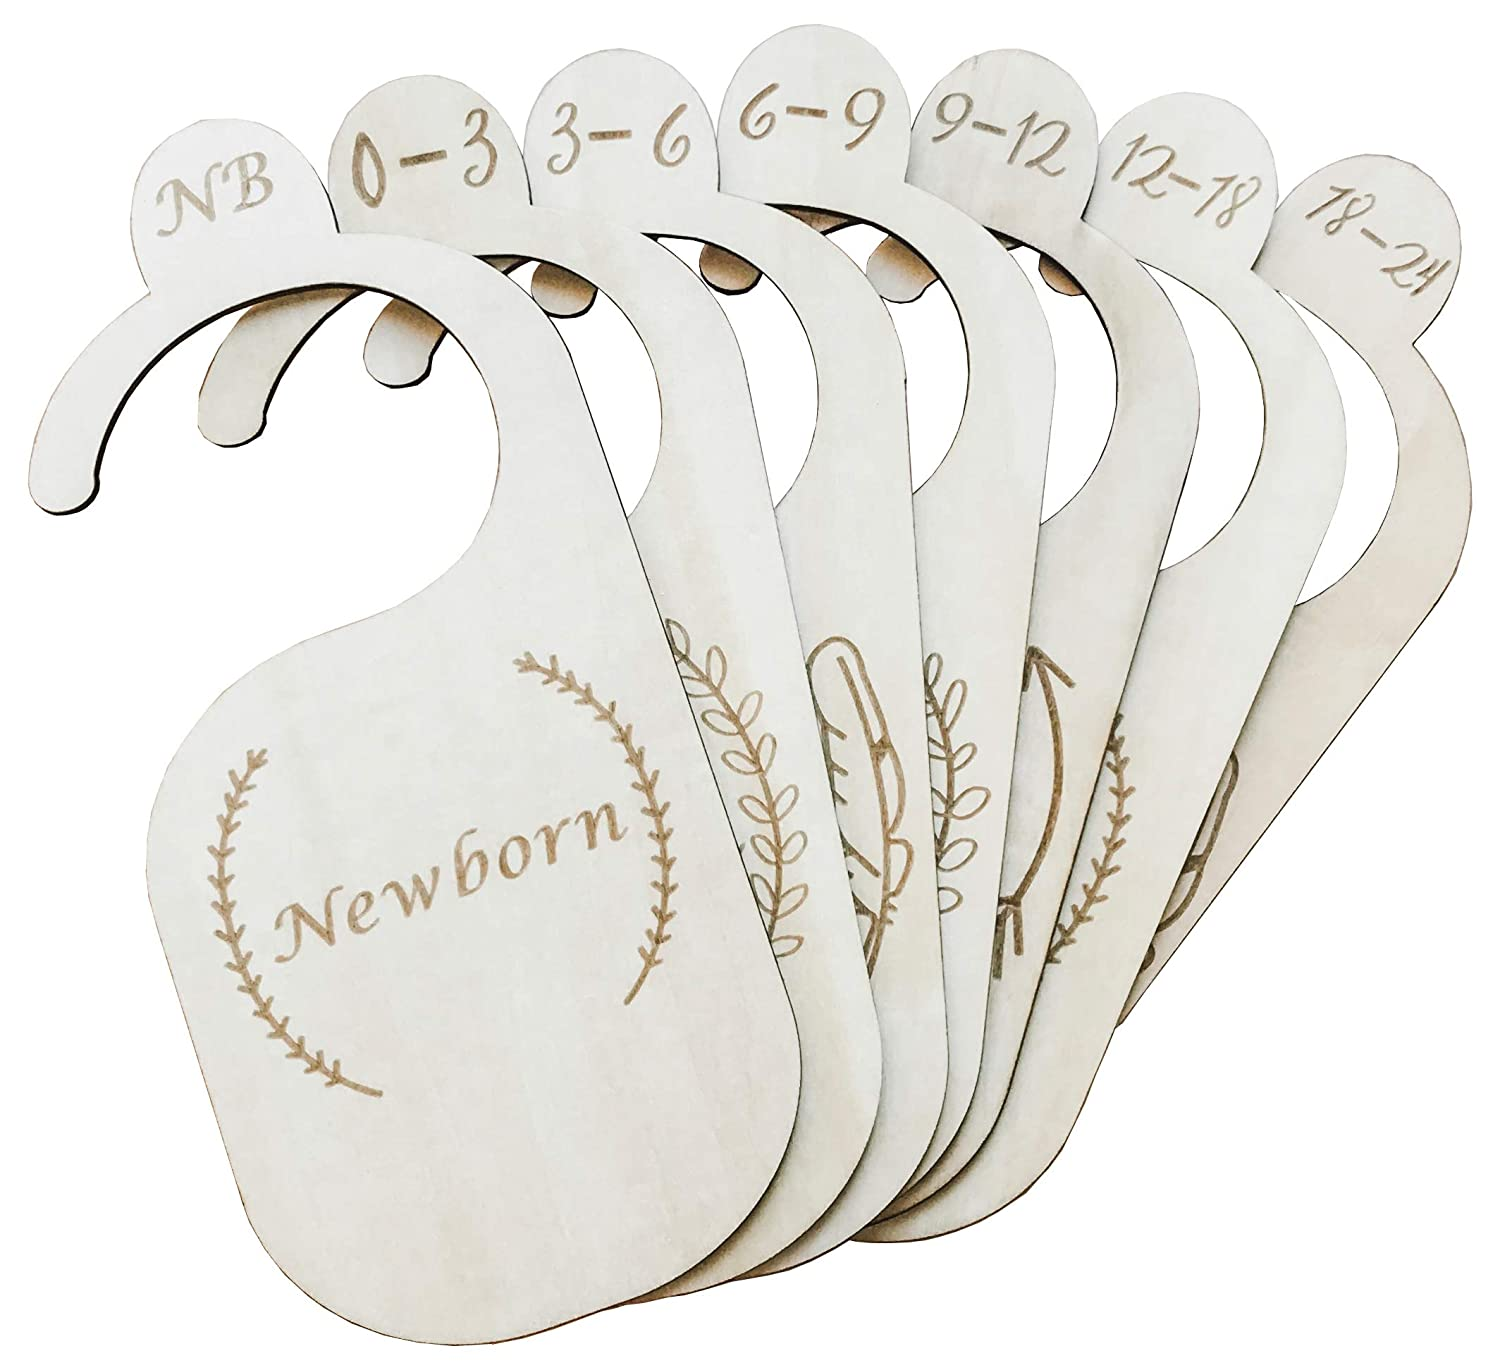 Premium Wood Baby Closet Dividers by Northwell, Set of 7: Baby Closet Organizers, Baby Nursery Decor, Baby Clothes Organizers, Baby Shower Gift - Made of Genuine Wood